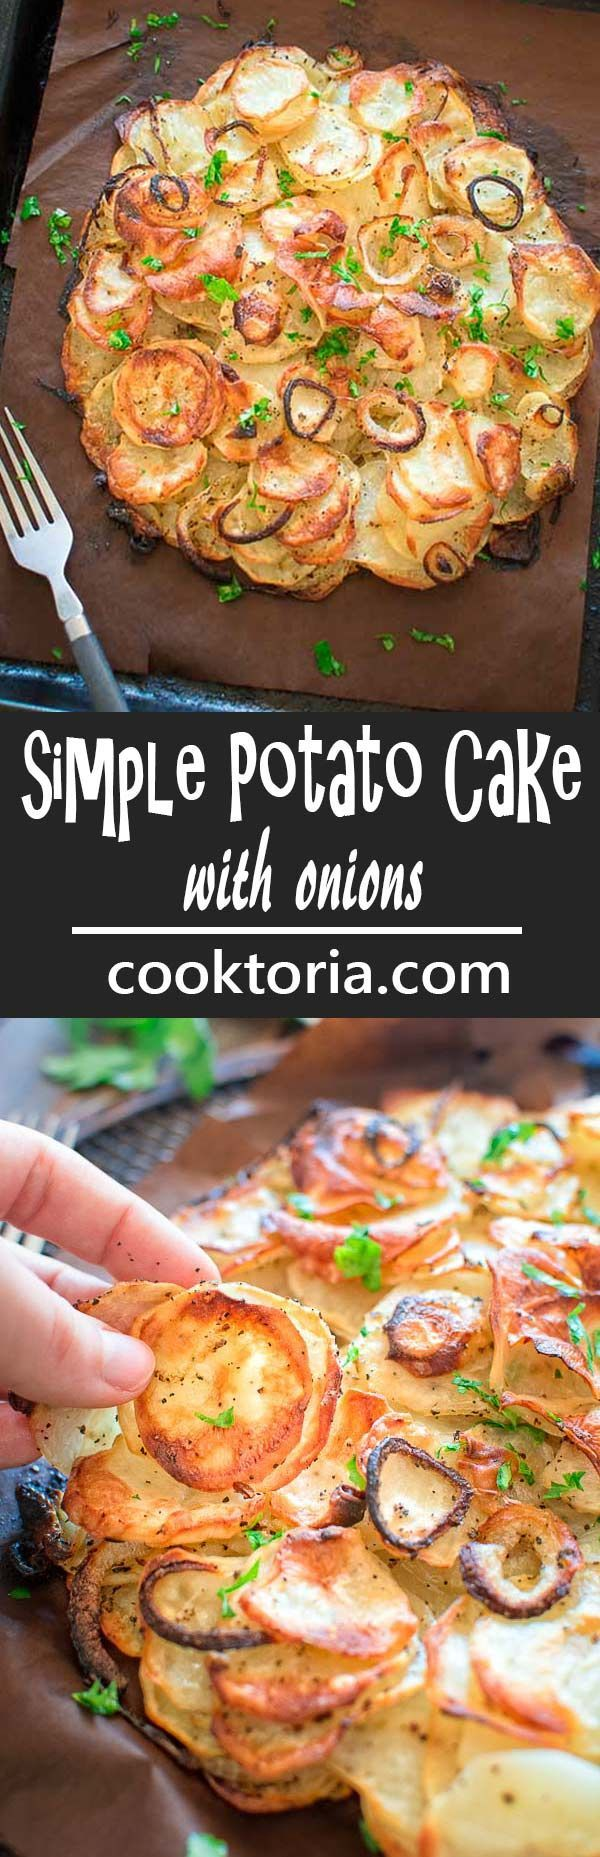 This Simple Potato Cake with Onions makes a perfect and filling lunch. Made with just 4 ingredients, this recipe is not to be missed! ❤️ COOKTORIA.COM